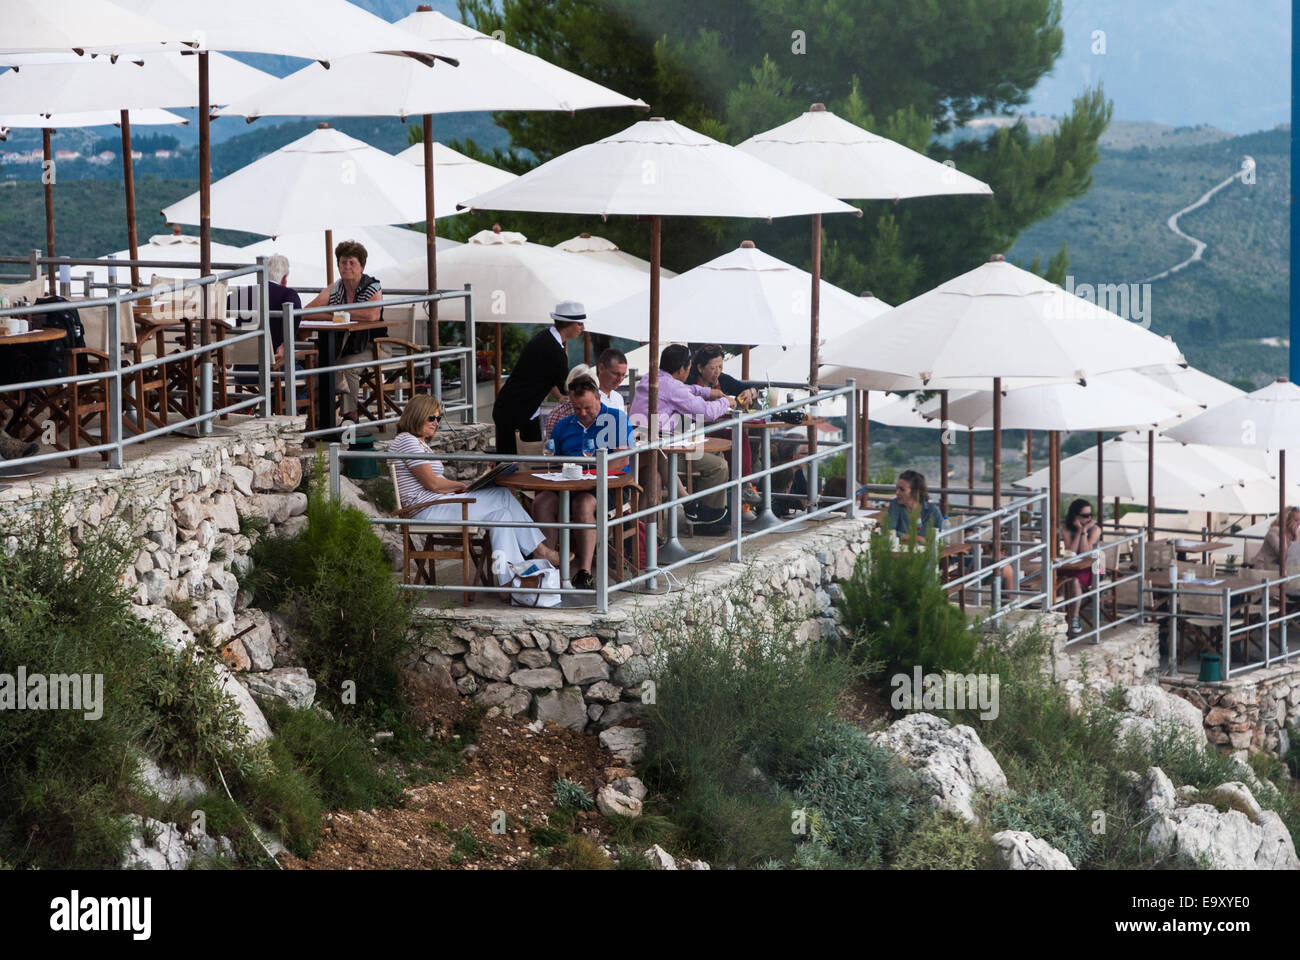 how to get to panorama restaurant dubrovnik